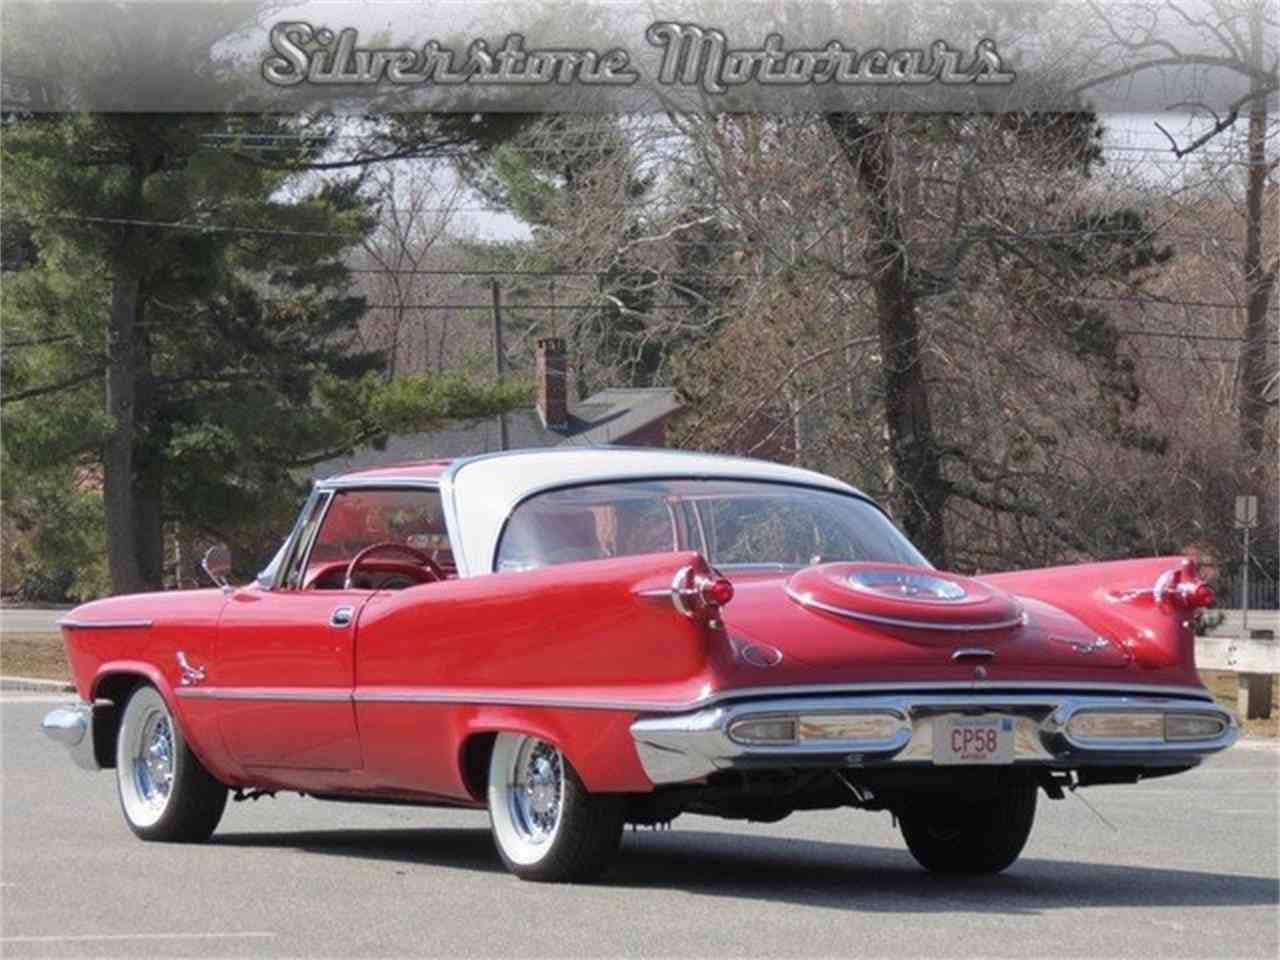 Large Picture of 1958 Chrysler Southampton located in Massachusetts Offered by Silverstone Motorcars - F8I7